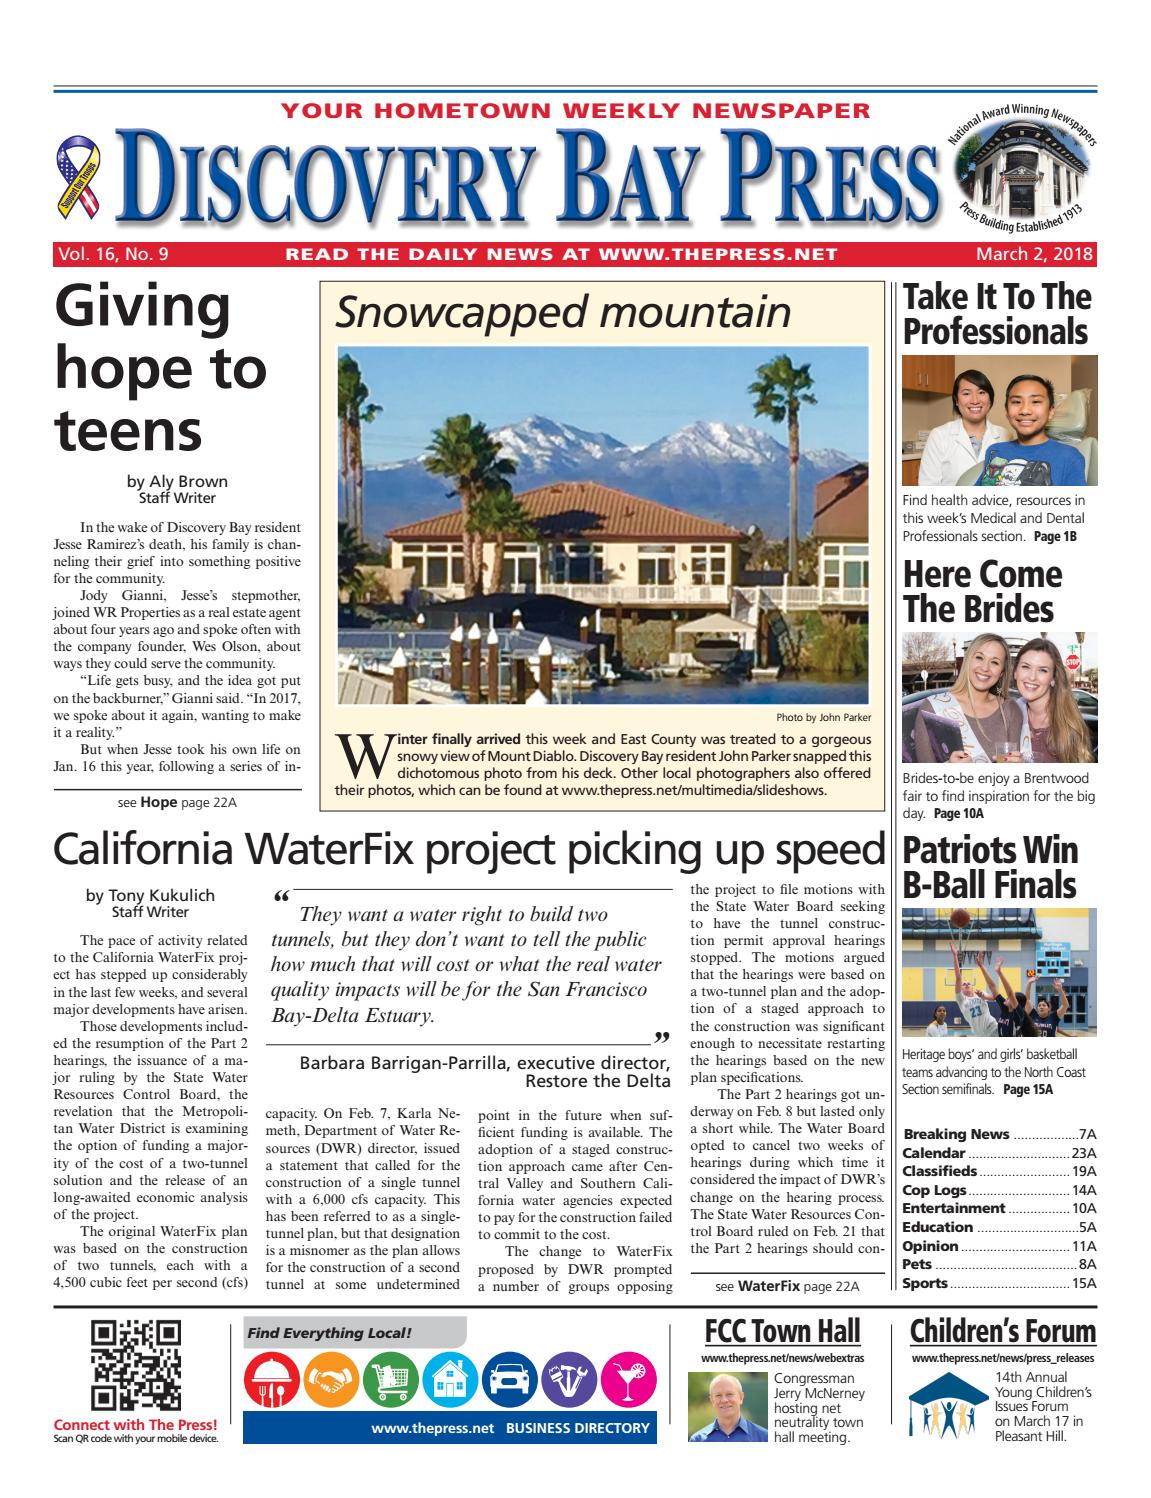 ee7f6535a1 Discovery Bay Press 03.02.18 by Brentwood Press   Publishing - issuu